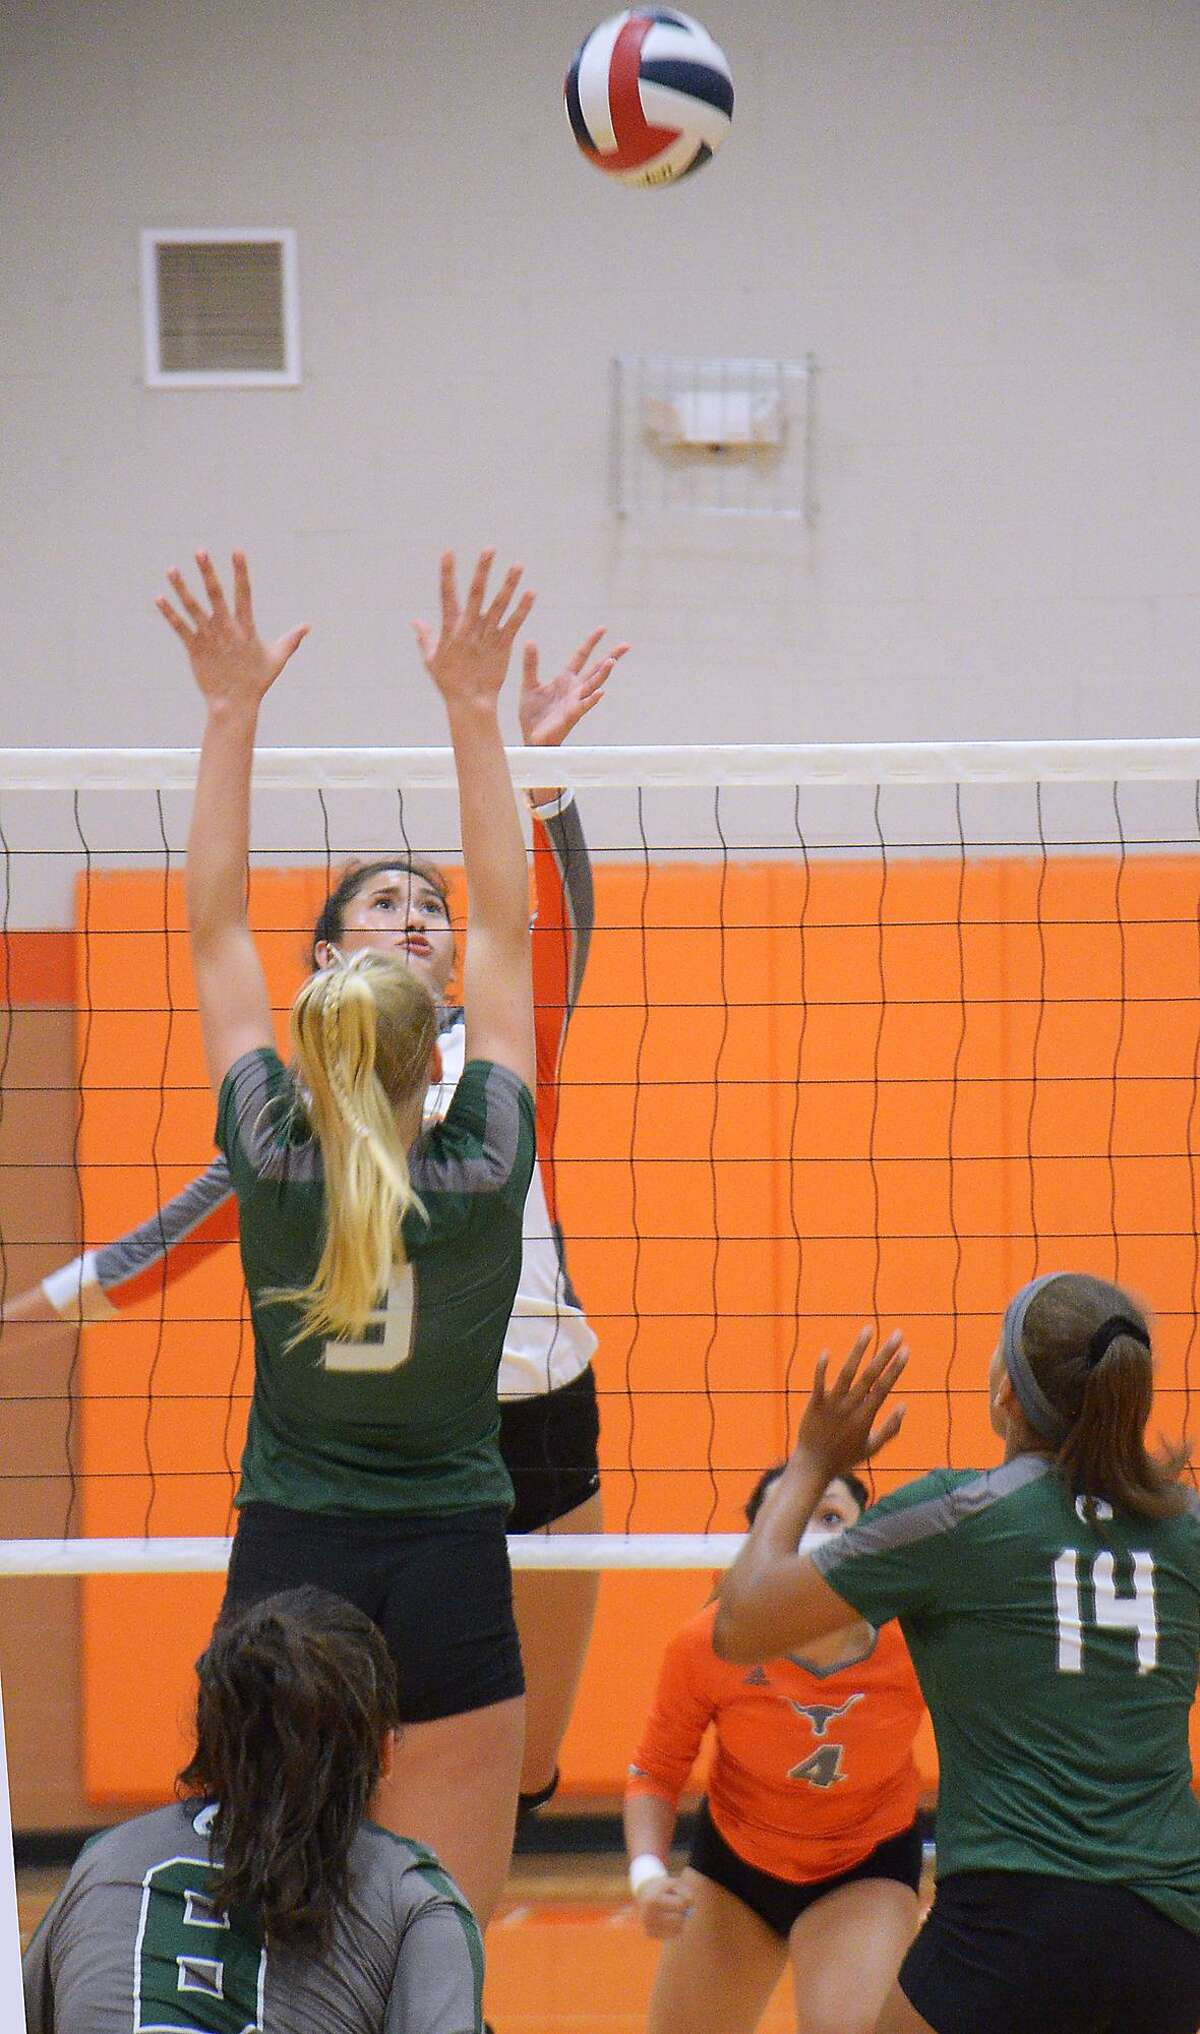 Carolina Medellin and United will be hosting this weekend's volleyball action as all local teams are headed to the Lady Longhorn Tournament with 32 teams competing overall.